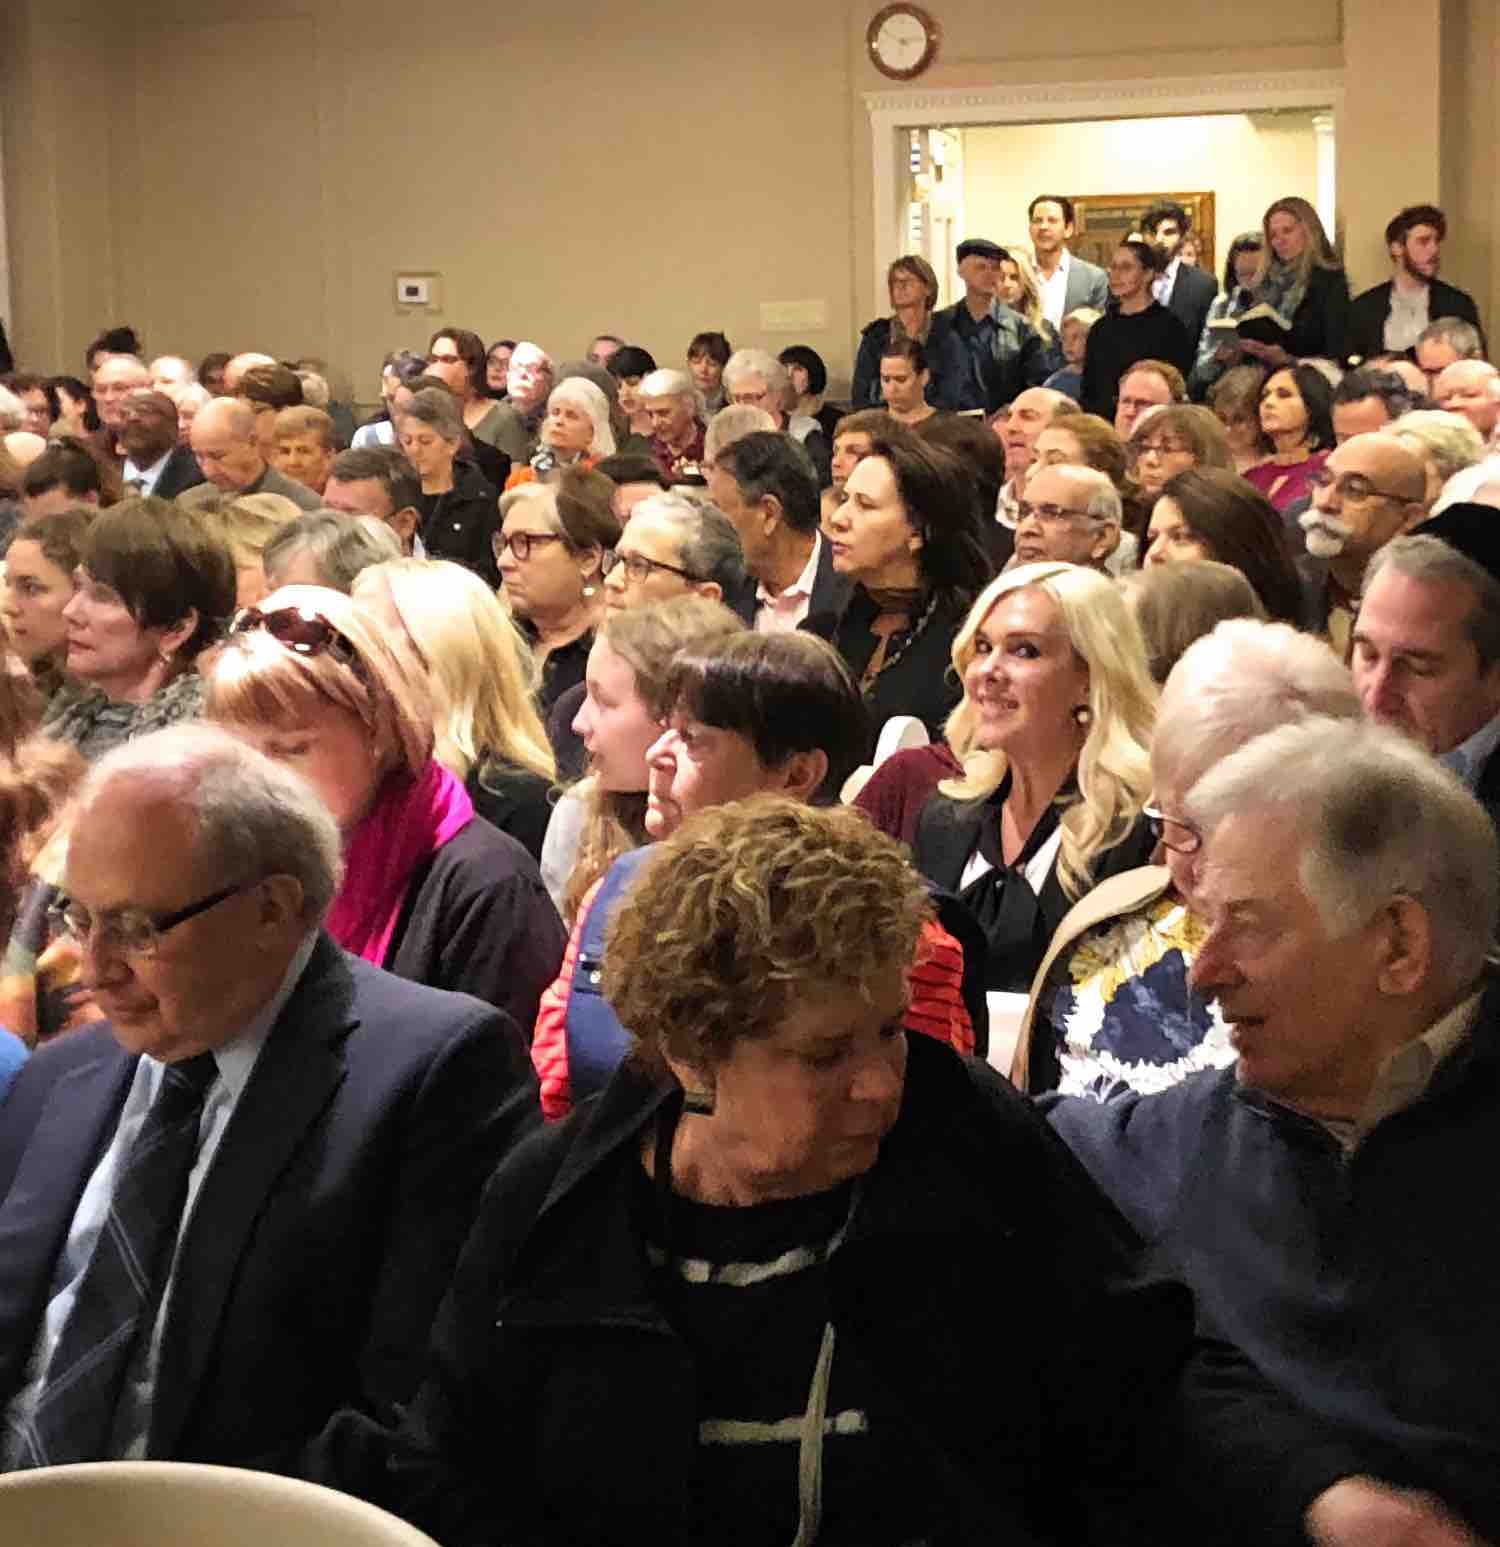 sanctuary filled to capacity for Shabbat